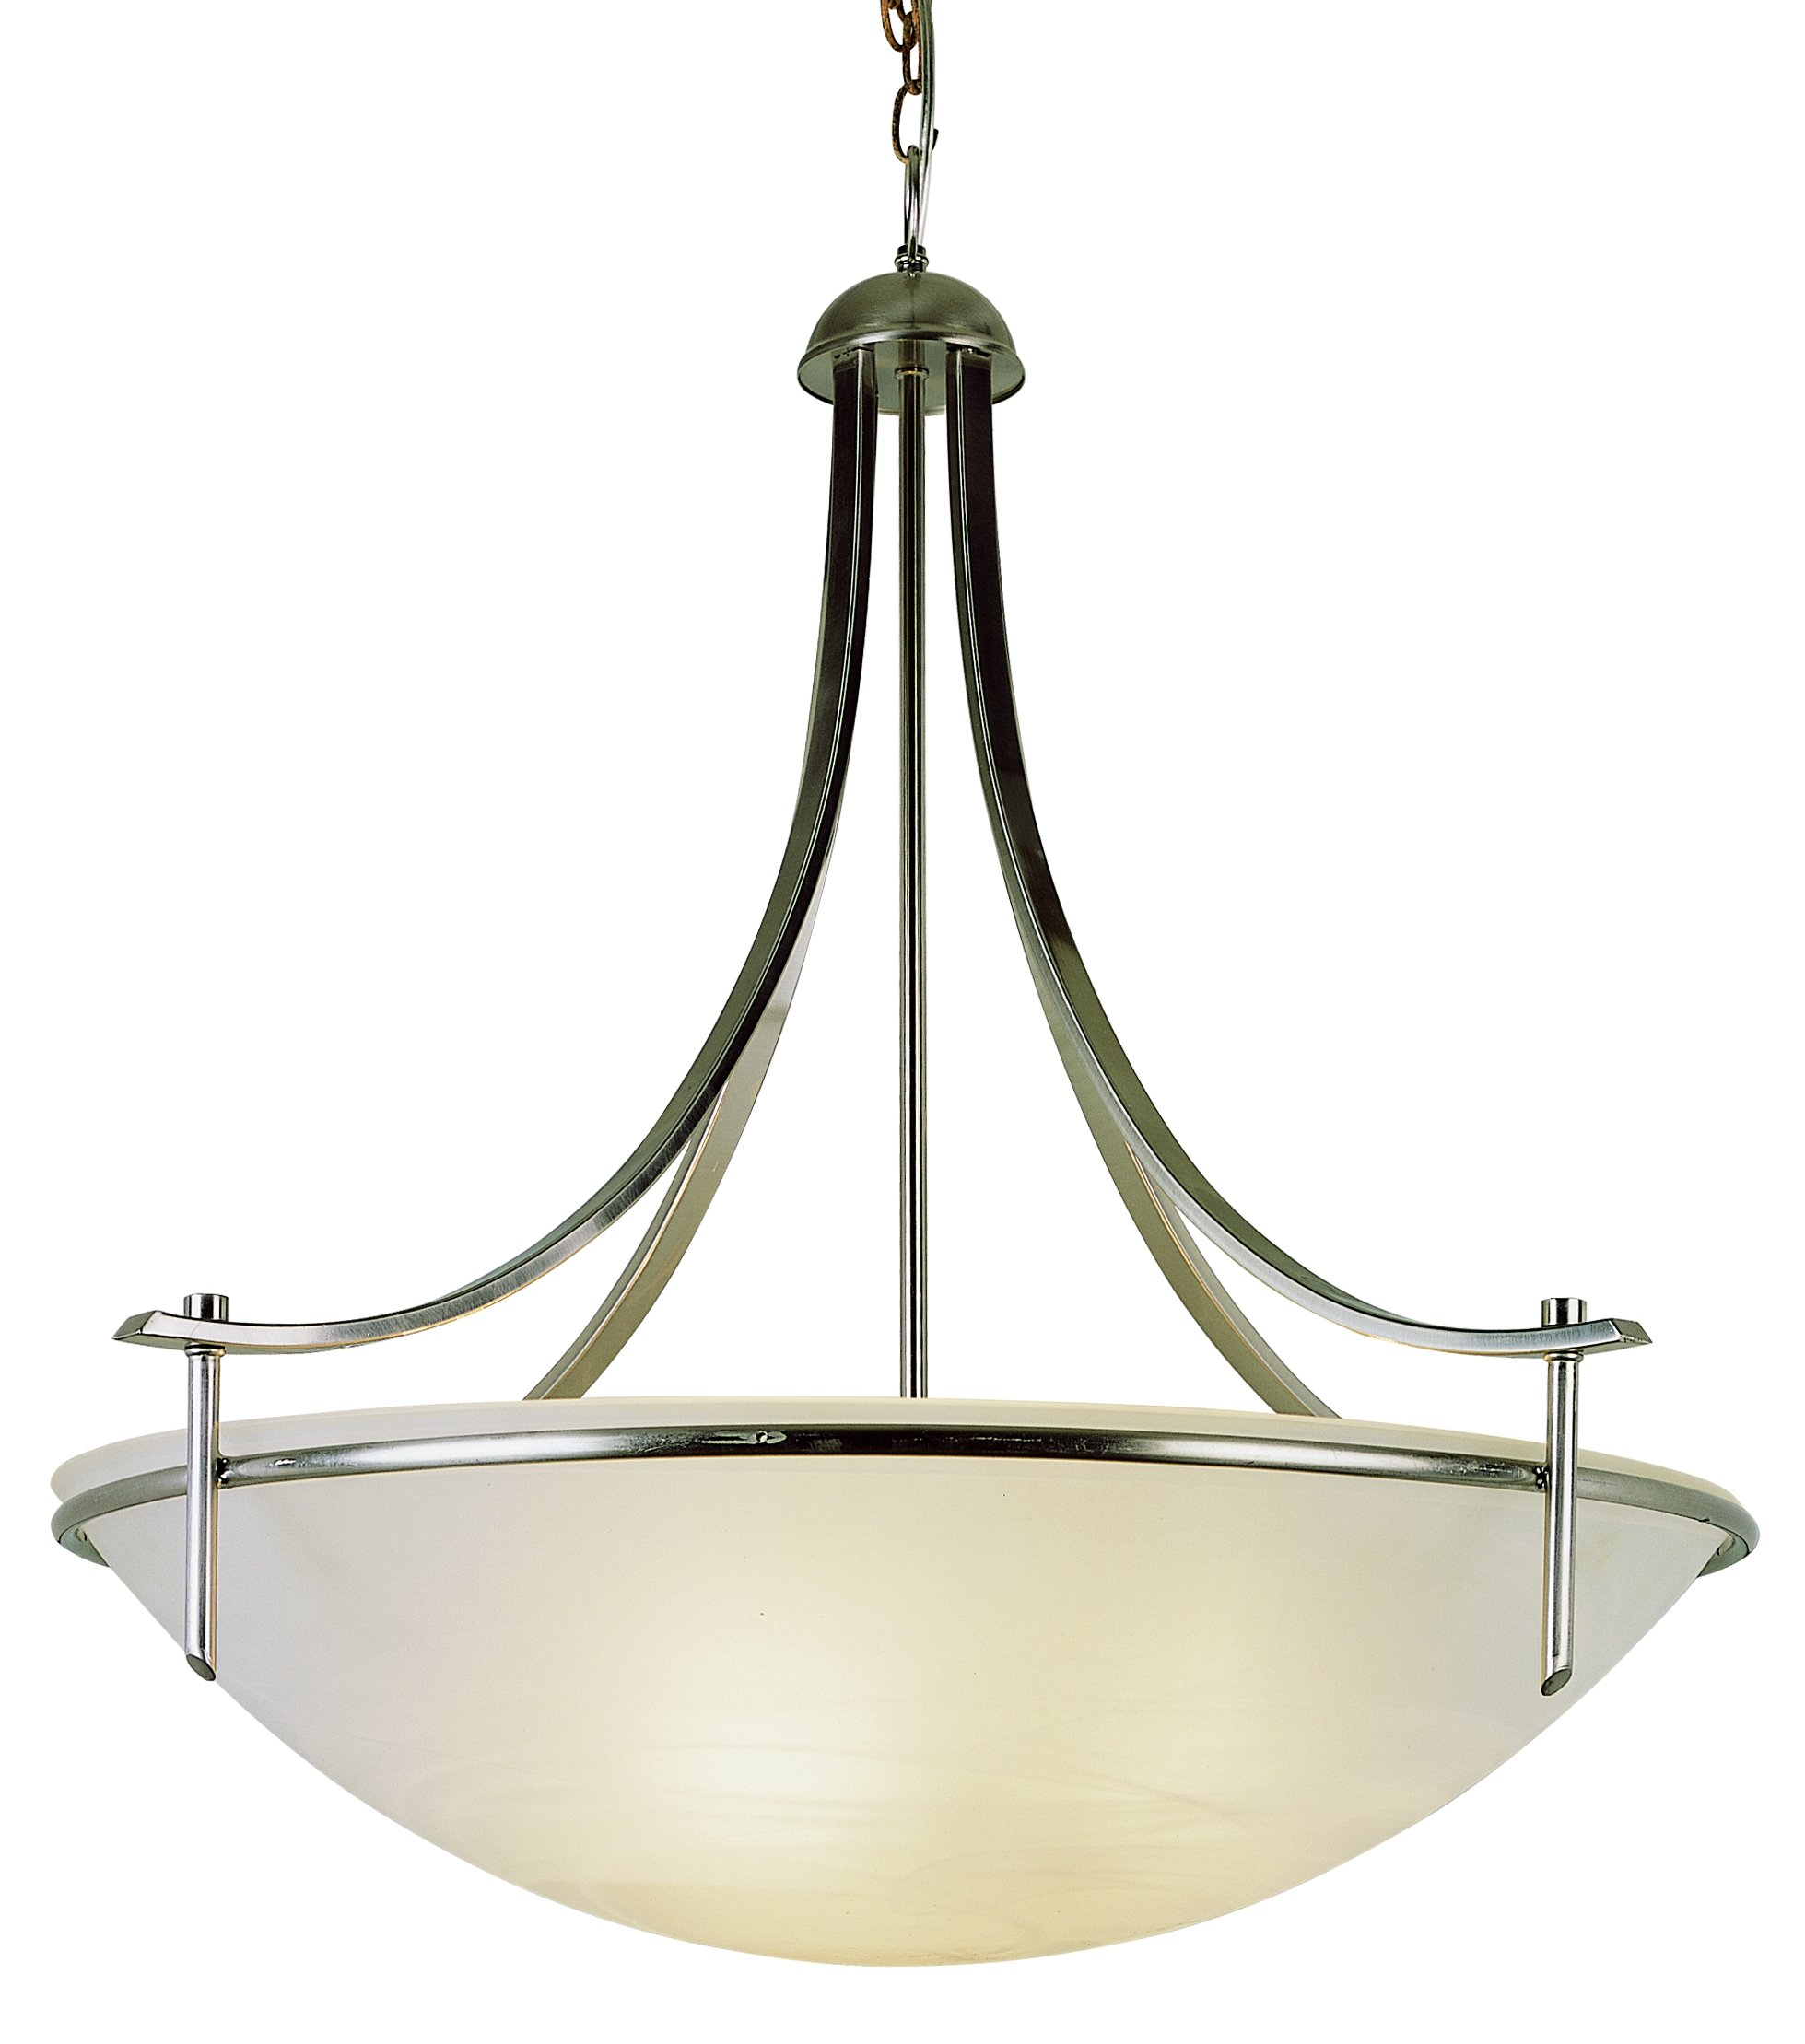 Bel Air Lighting Trans Globe Imports 8178 BN Transitional Four Light Pendant from Vitalian Collection in Pwt, Nckl, B/S, Slvr. Finish, 32.00 inches, Brushed Nickel